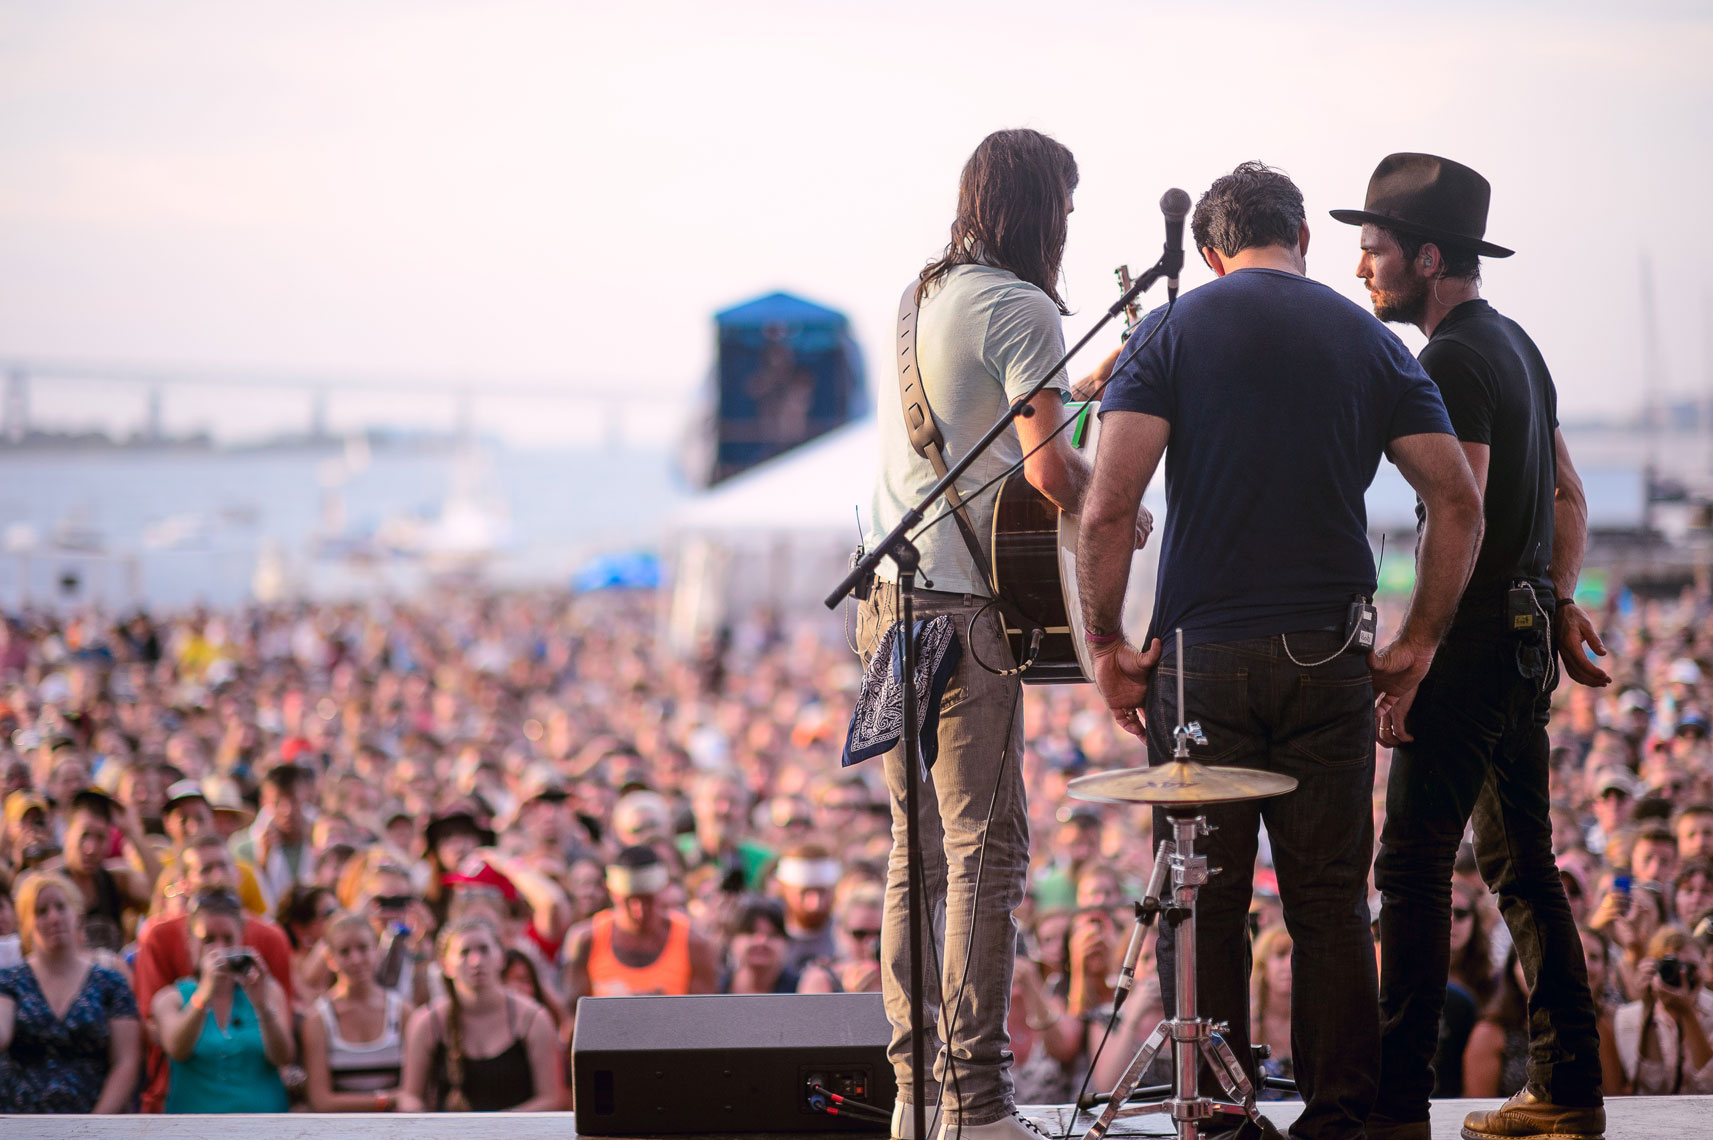 The-Avett-Brothers-performs-at-the-2013-Newport-Folk-Festival-4